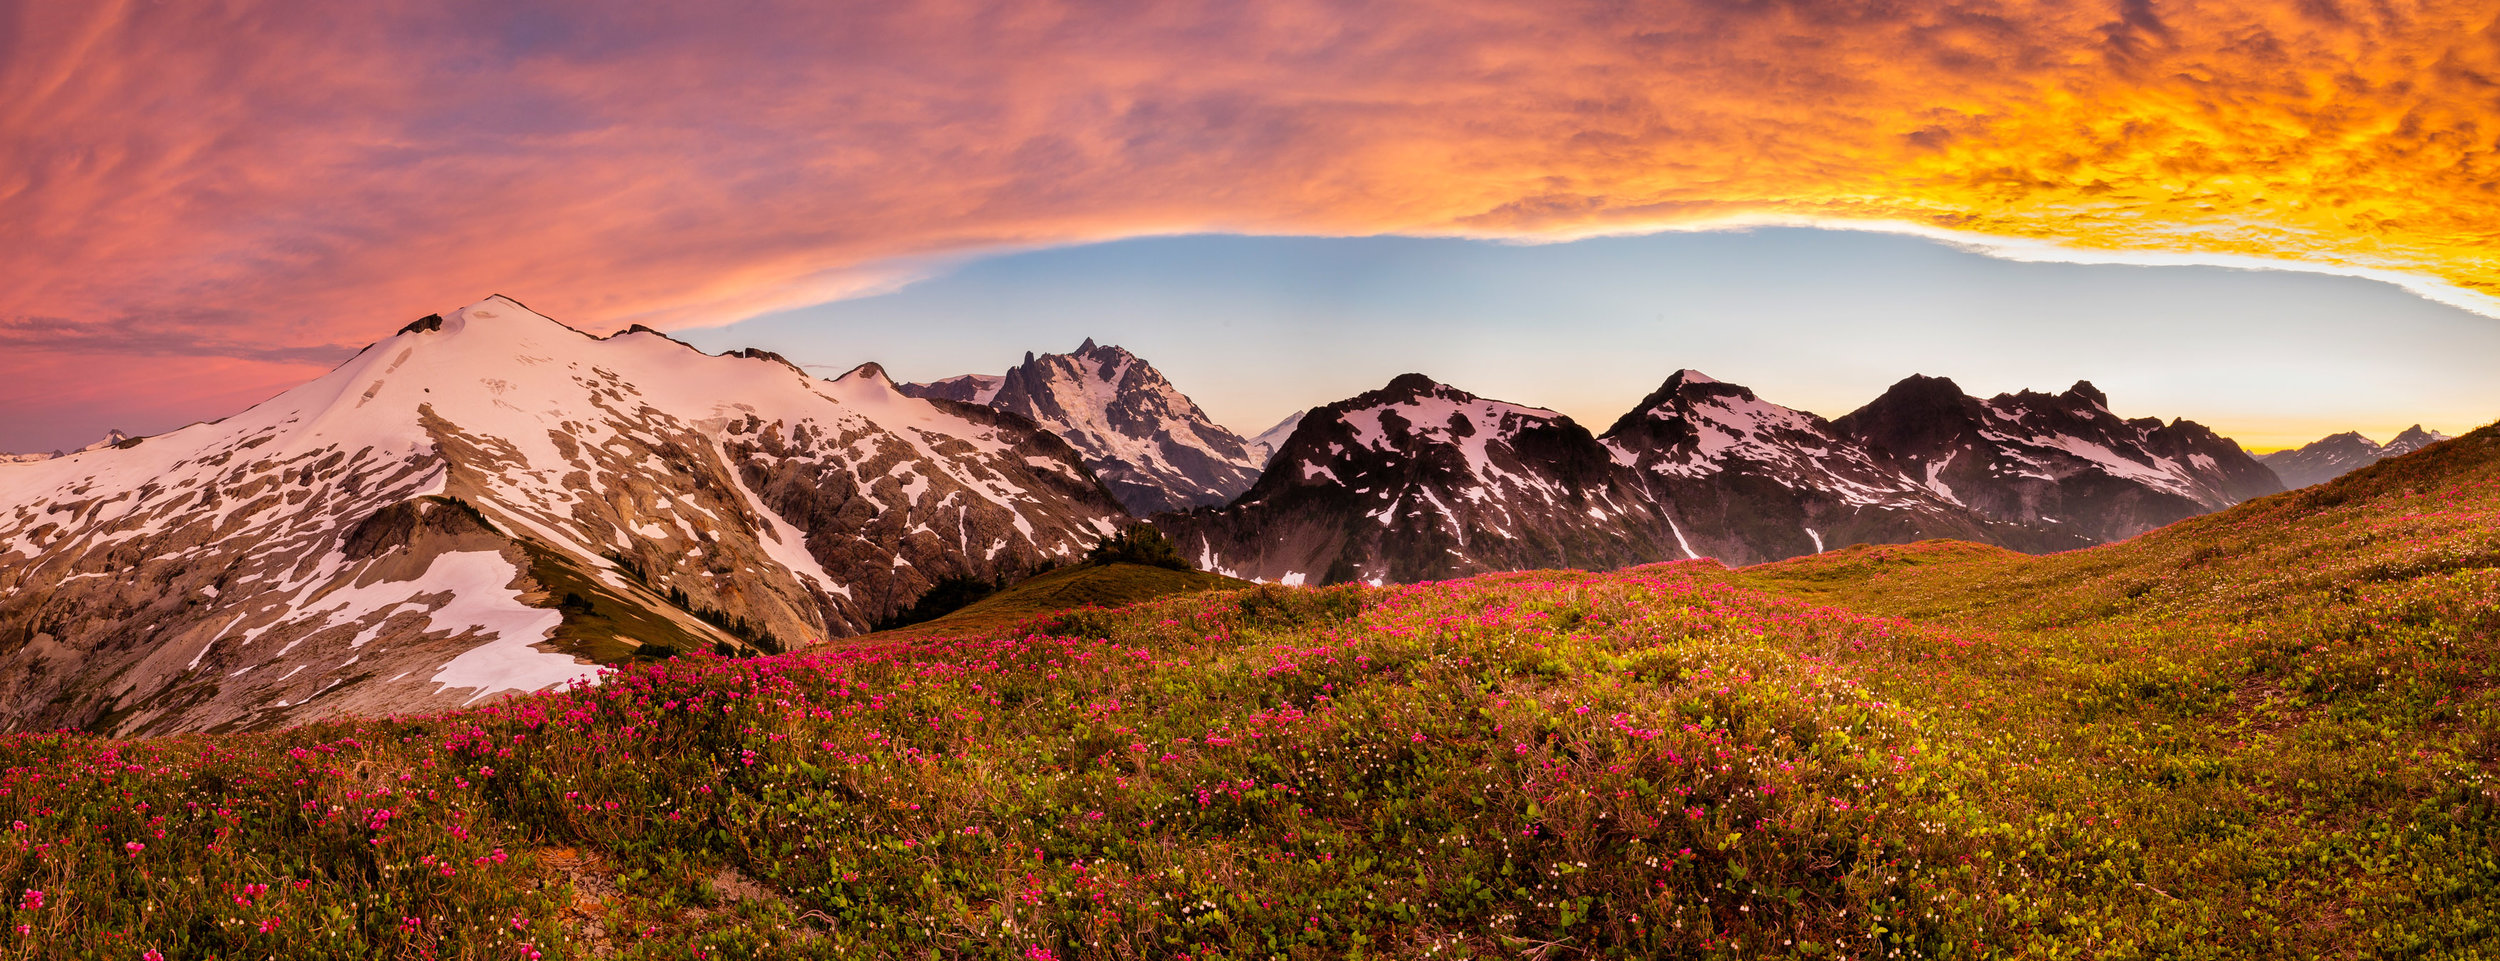 Landscape: Mt. Ruth, Mt. Shuksan and wild heather at sunset,  Mt. Baker Wilderness, Washington